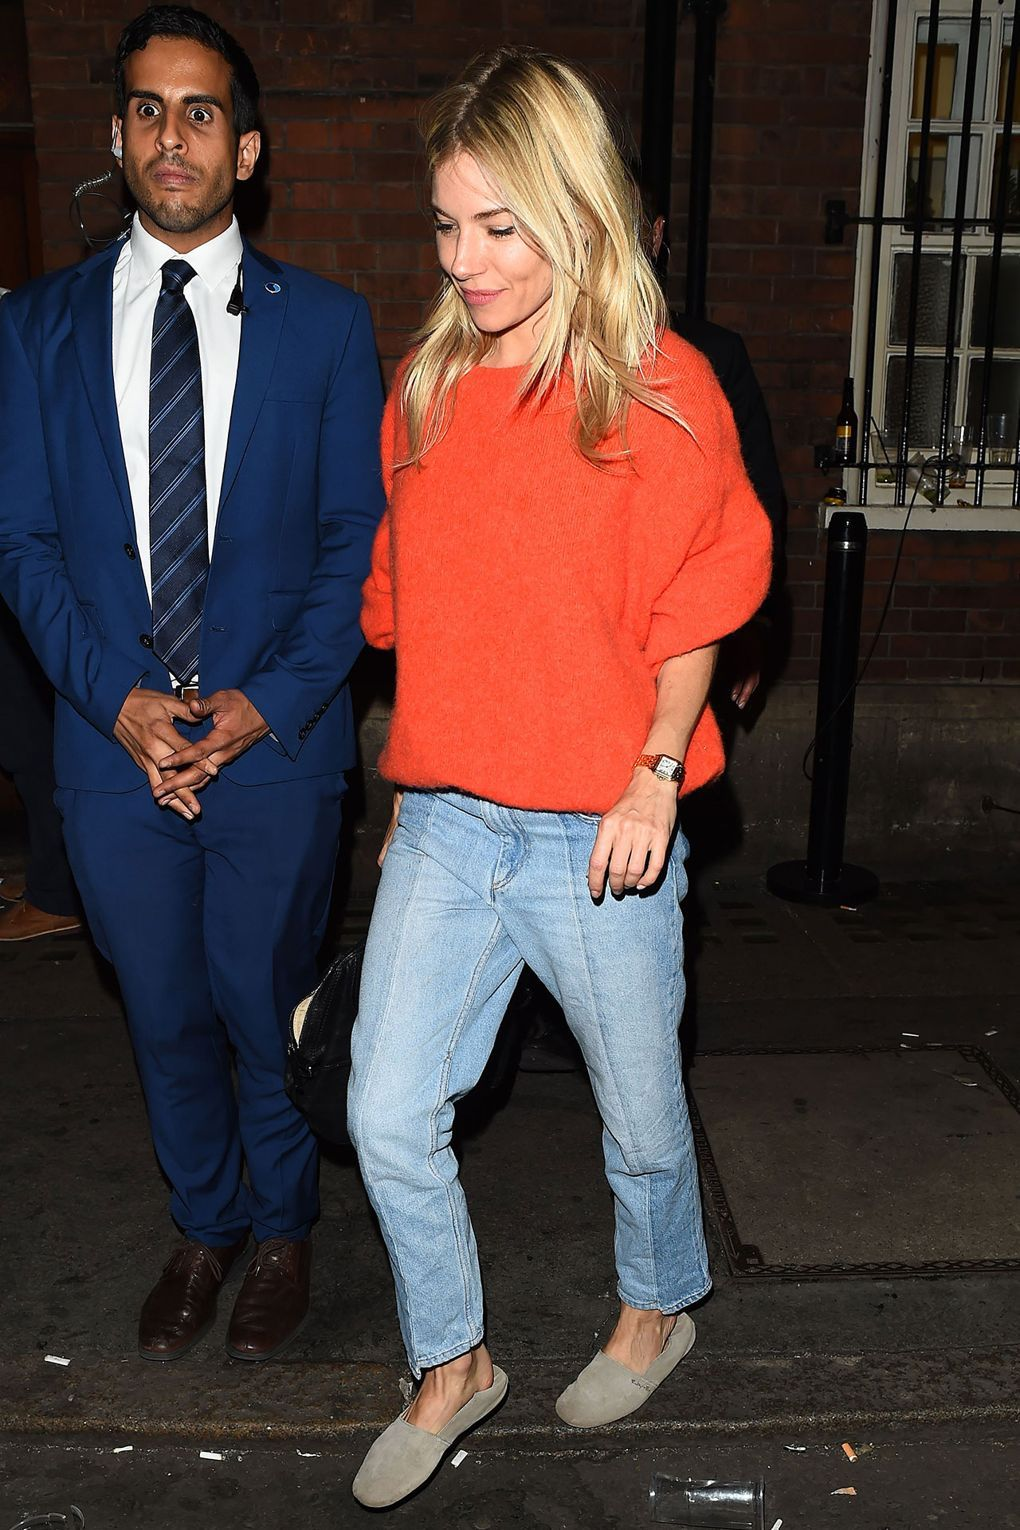 4b6b52c5893d64 The actress wore a bright orange jumper and a pair of light-washed jeans.